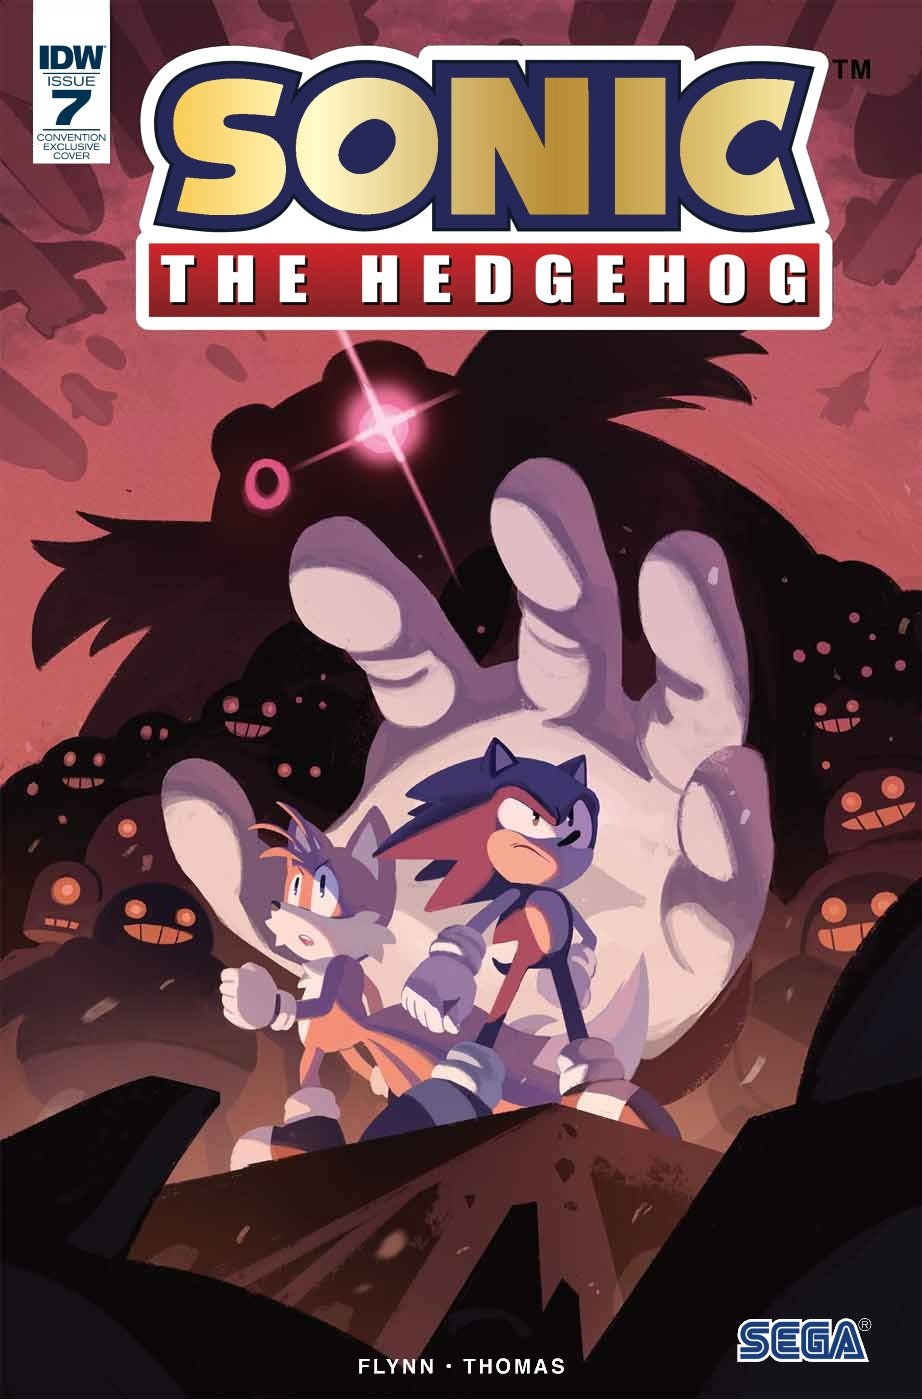 Sonic the Hedgehog 007 (July 2018) (convention exclusive c)